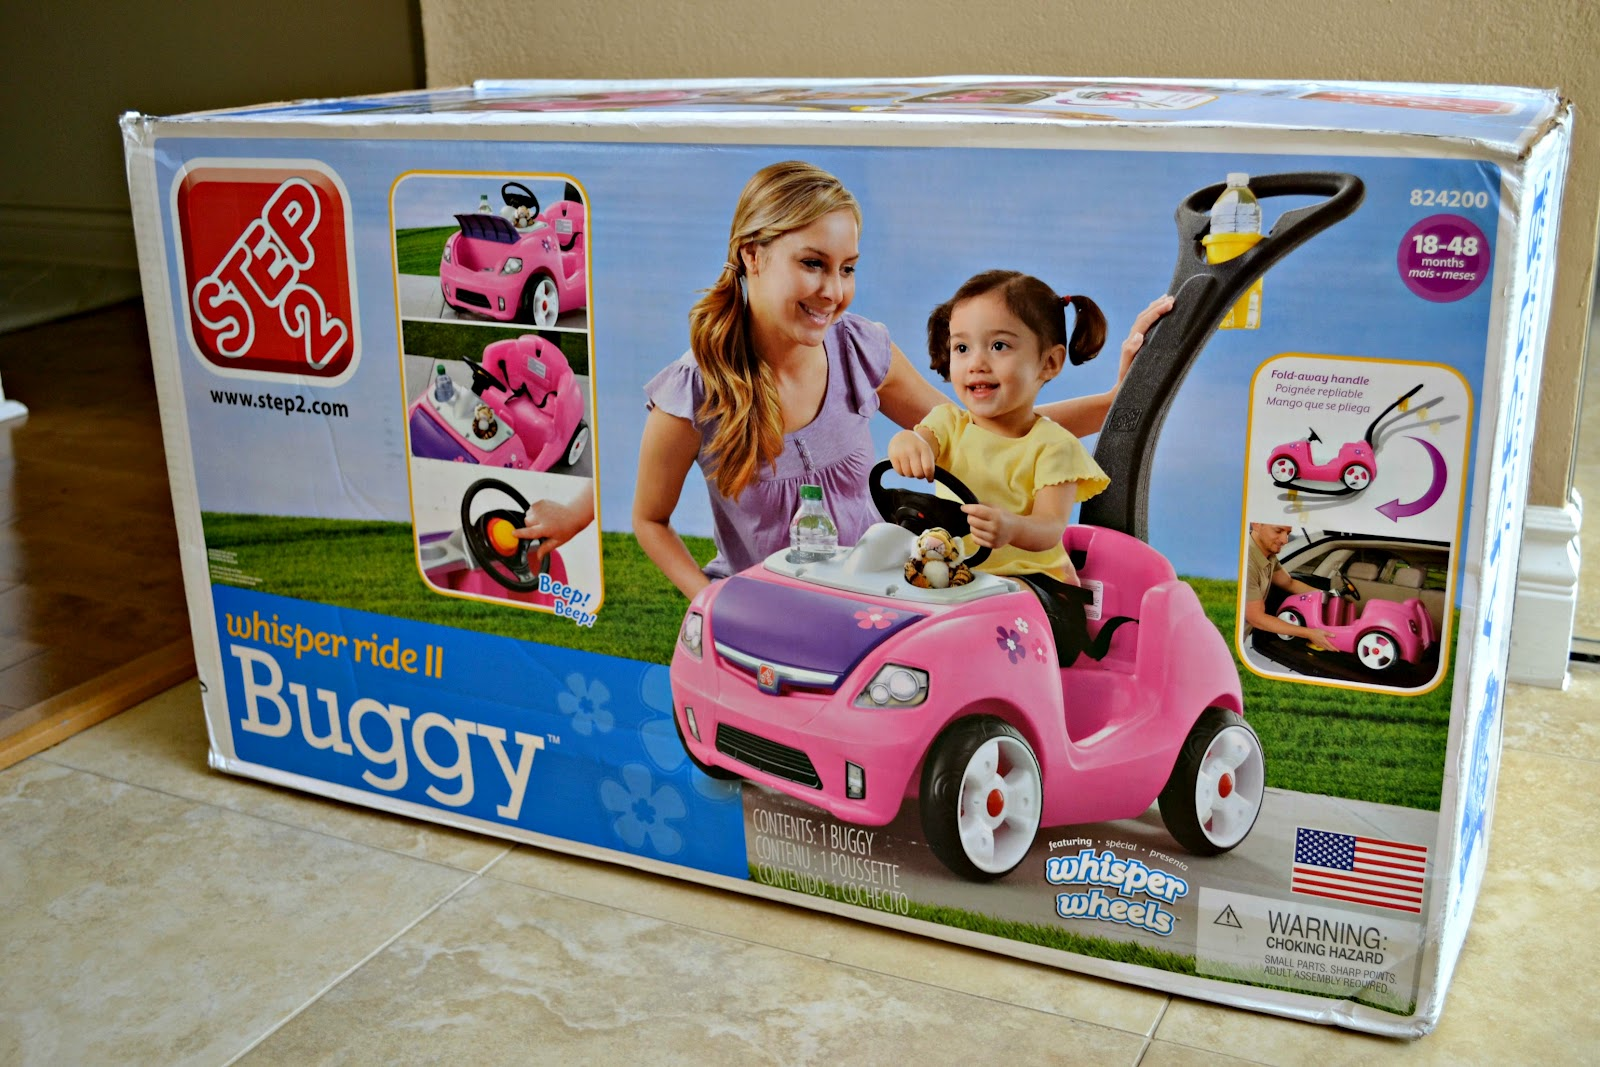 9b058a4c2d2 Step2 Whisper Ride II 2 Buggy review, Step2 Test Drive mom, Step2 Whisper  Ride